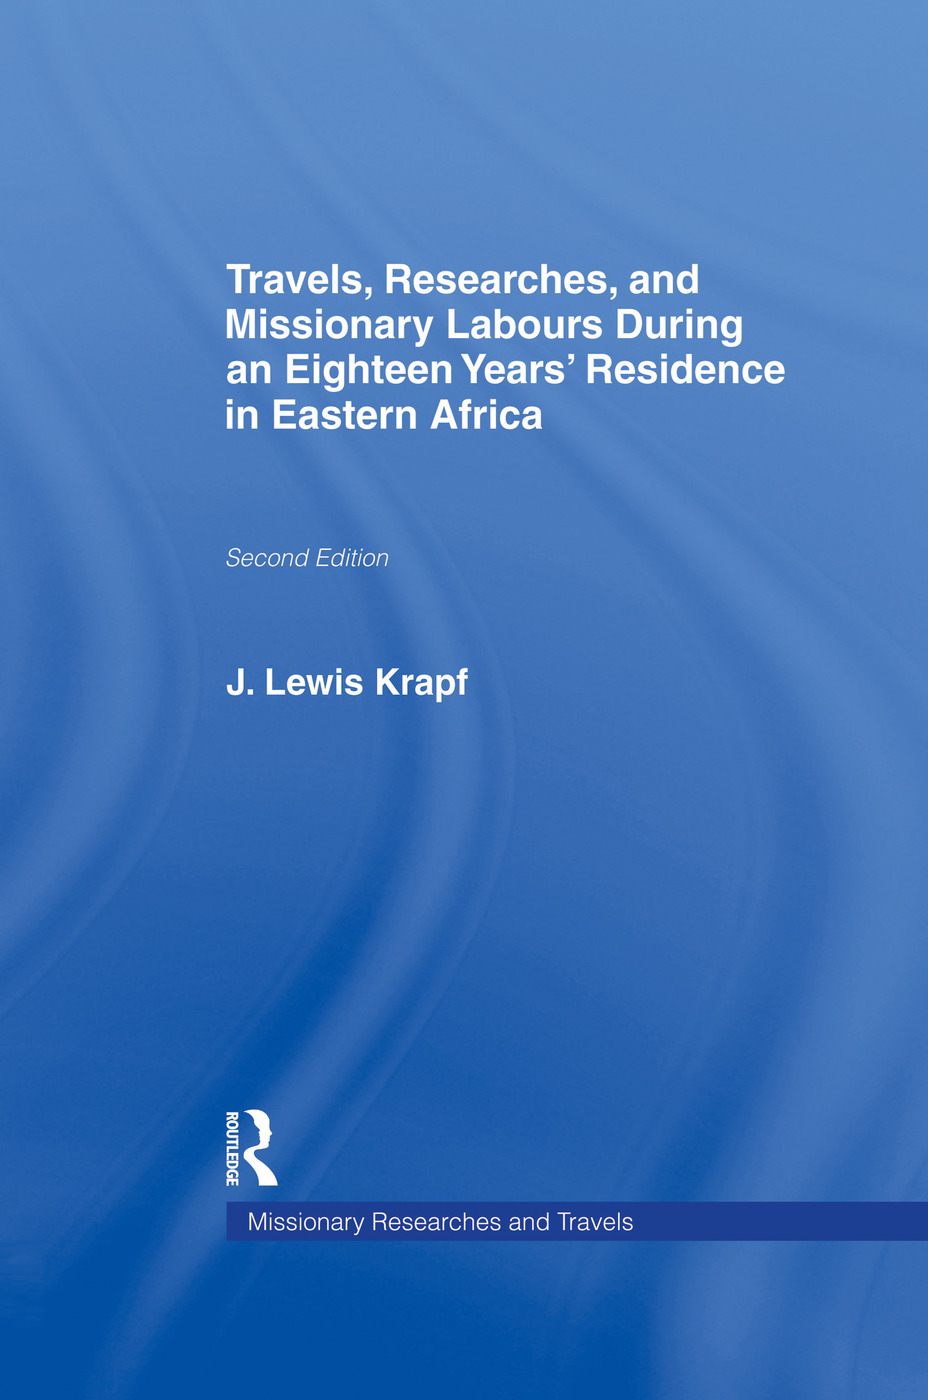 Travels, Researches and Missionary Labours During an Eighteen Years' Residence in Eastern Africa: 1st Edition (Paperback) book cover